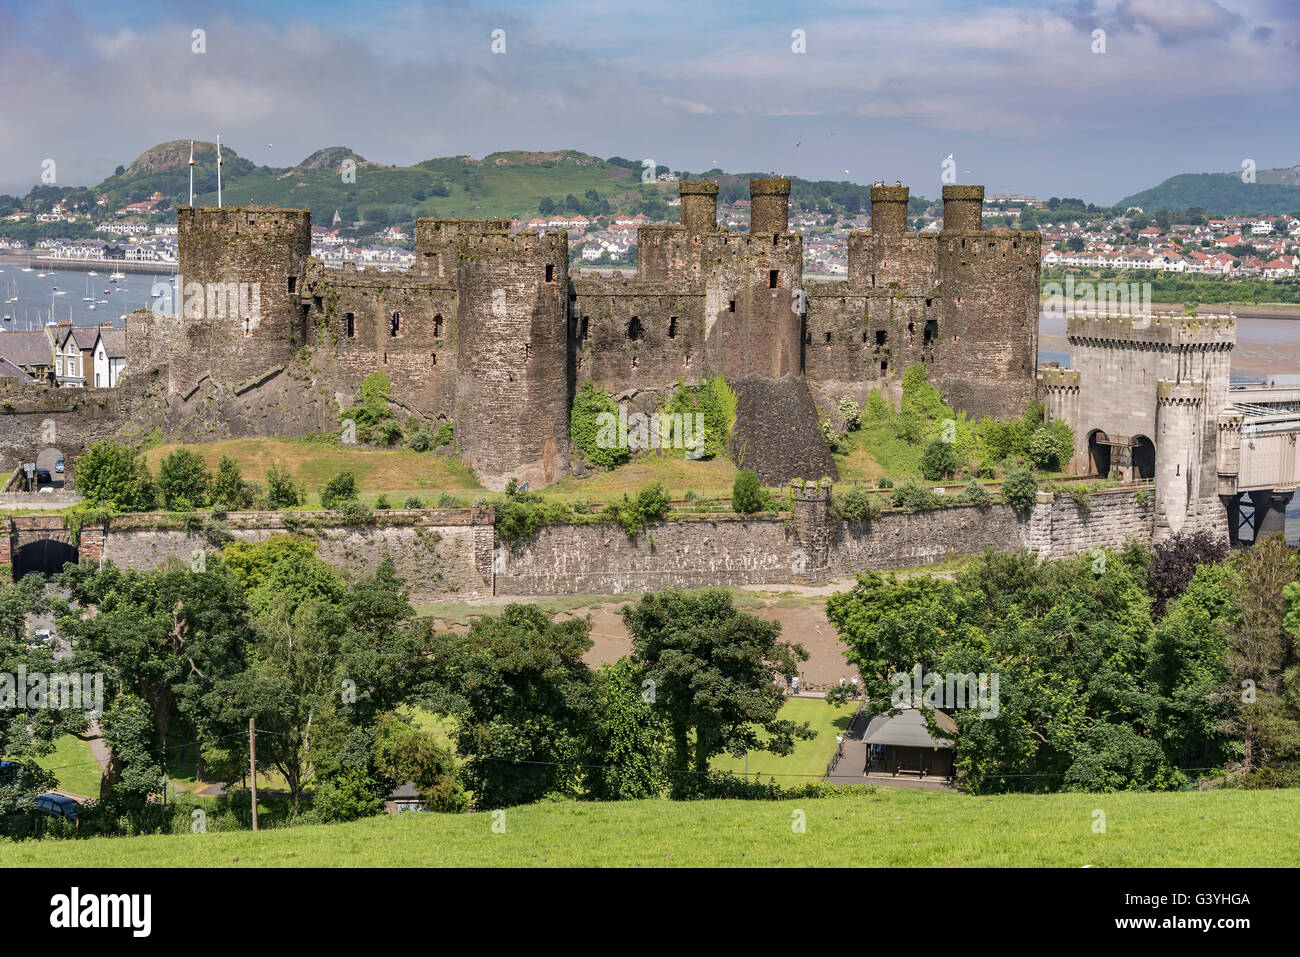 Medieval Conwy Castle Clwyd North Wales on the river Conwy. Conway - Stock Image